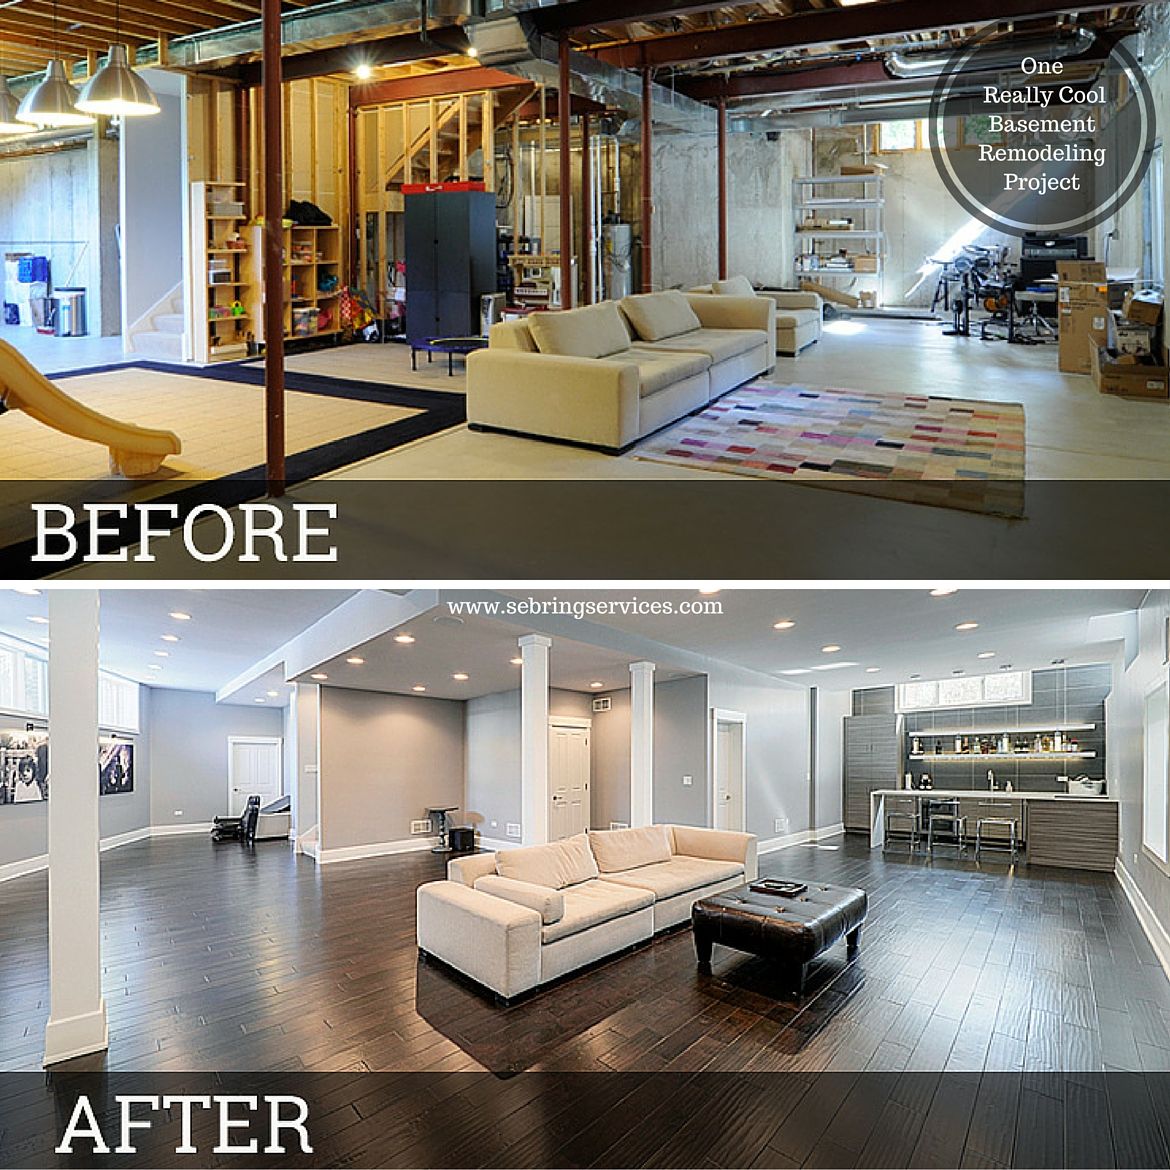 Basement Remodeling Contractors before & after one really cool basement remodeling project | home